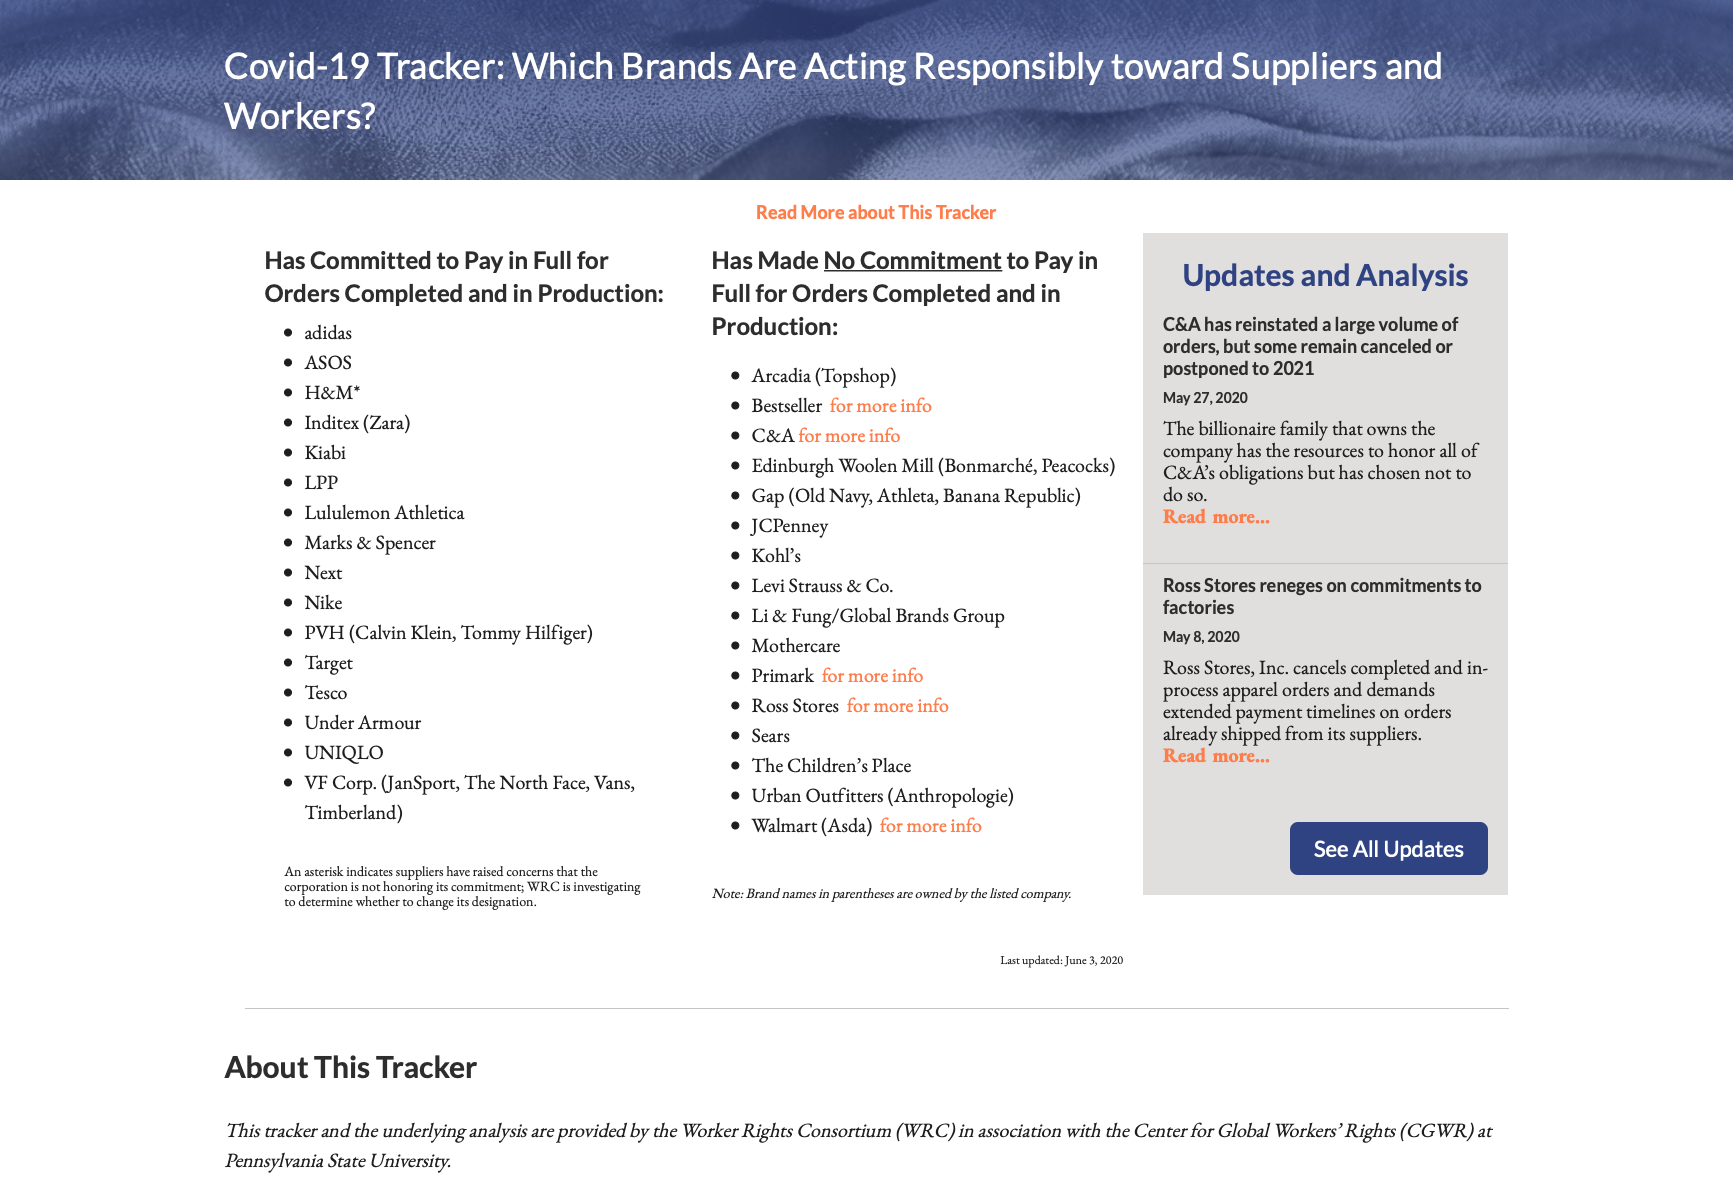 Covid-19 Tracker: Which Brands Are Acting Responsibly toward Suppliers and Workers?